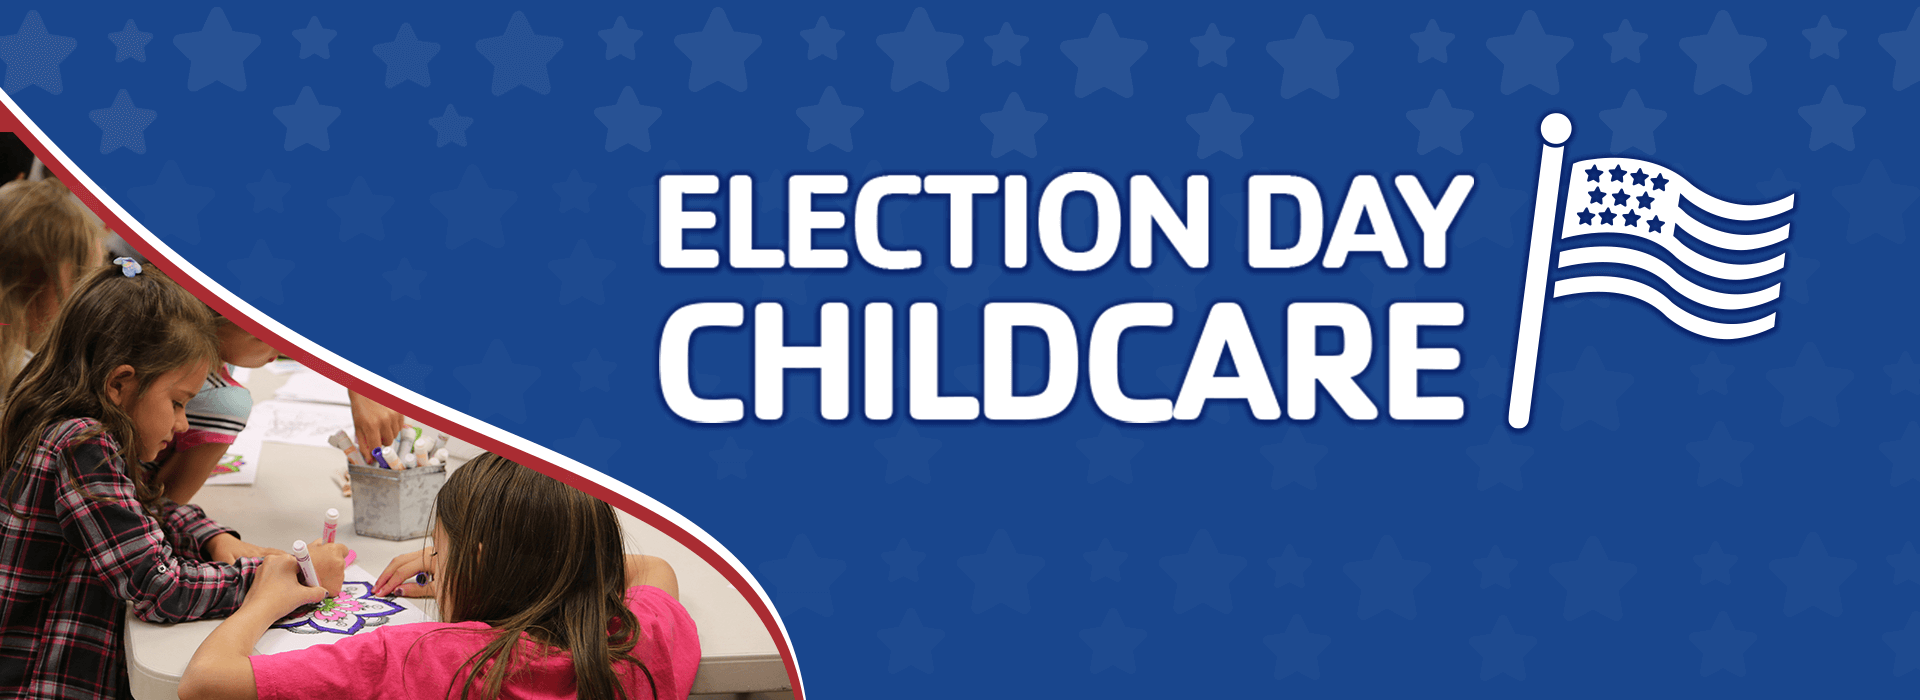 ElectionDayChildcare_1920x700